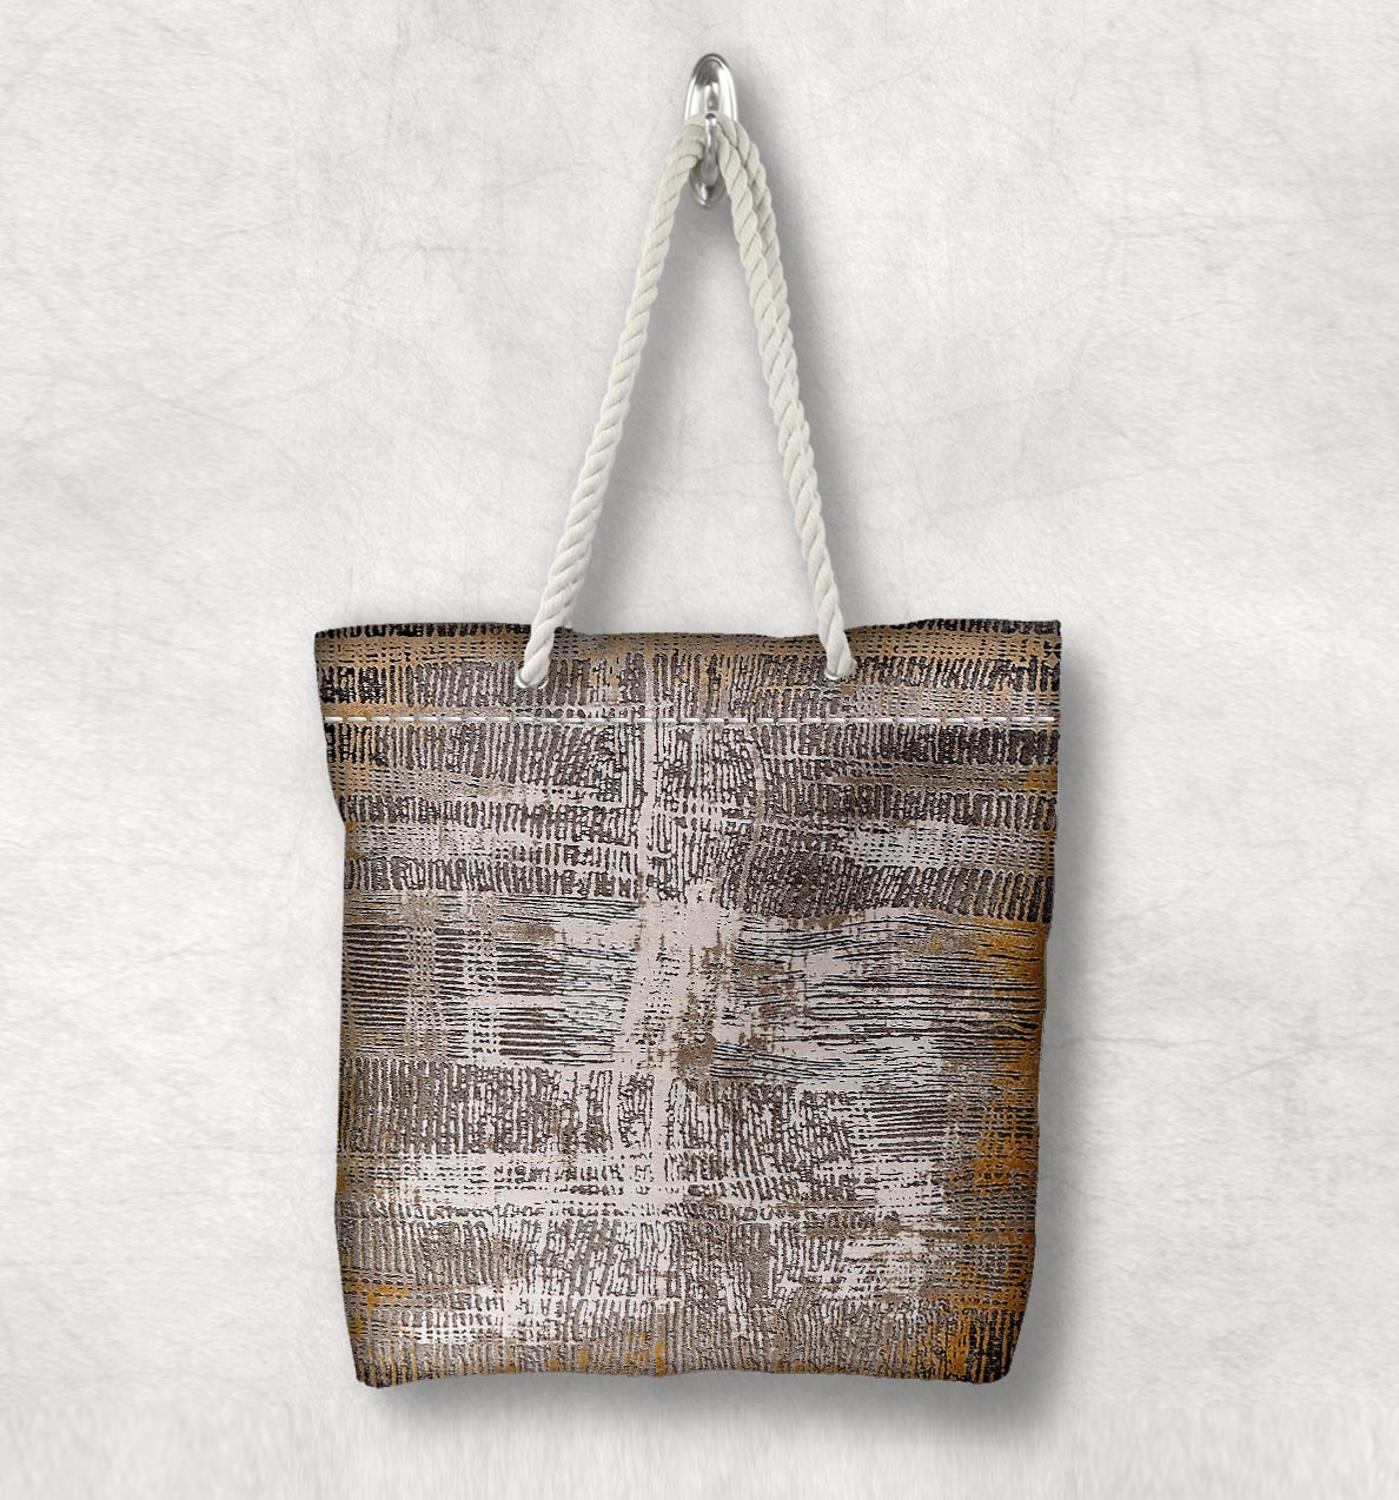 Else Orange Brown Lines Anatolia Antique Kilim Design White Rope Handle Canvas Bag Cotton Canvas Zippered Tote Bag Shoulder Bag